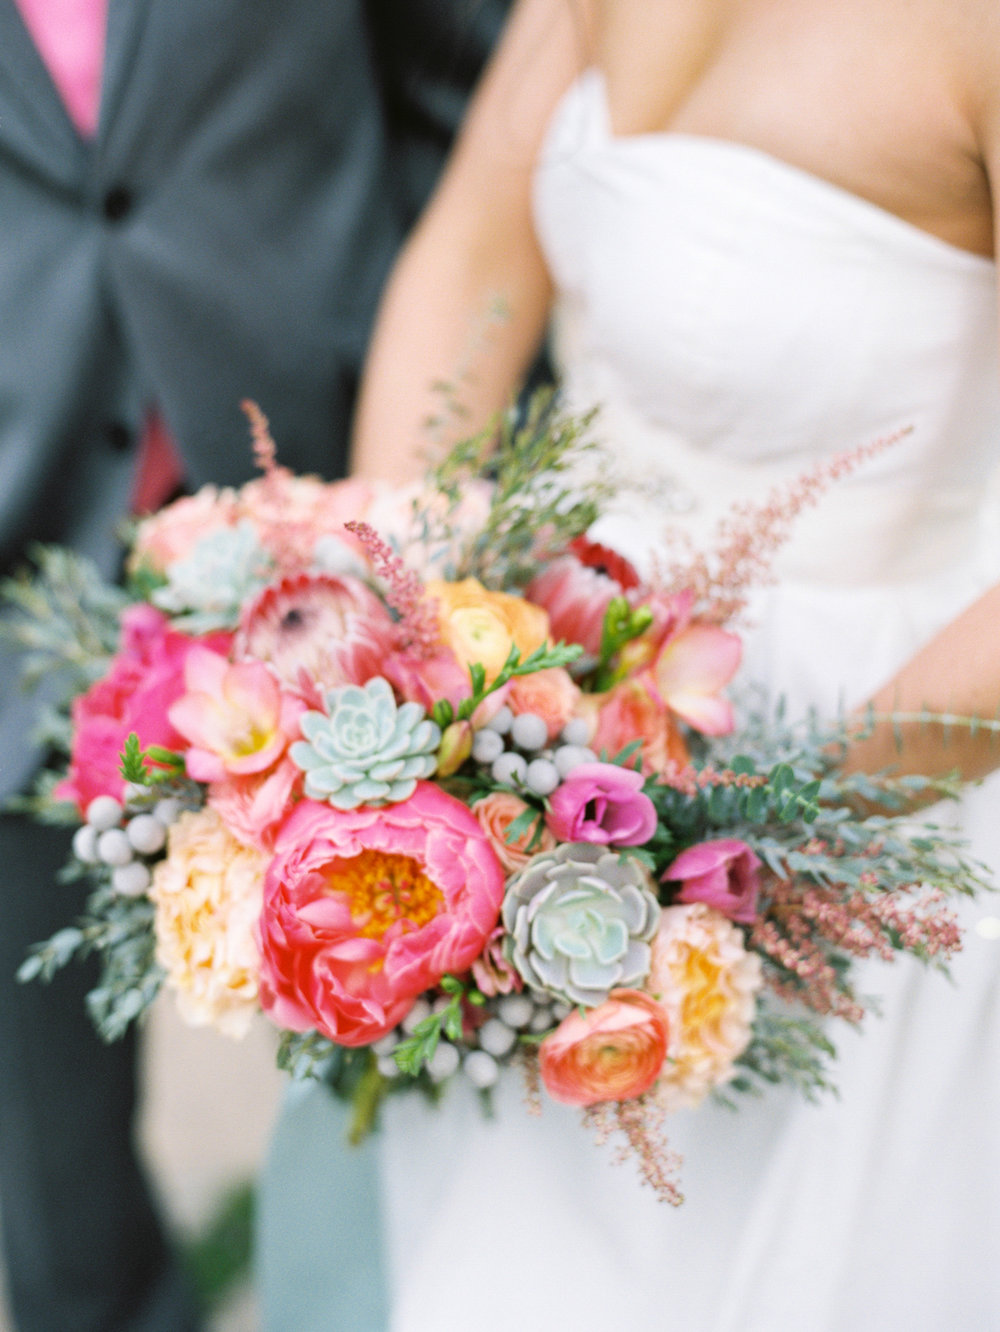 Photography -  Michael and Anna Costa   Coral Charm Peony - Winter/Spring  Peach Campanella Garden Rose - Year Round  Peach Ranunculus - Spring  Silver Brunia - Year Round  Echeveria Lola Succulents - Year Round  Pink Astilbe - Year Round  Pink Ice Protea - Year Round  Pink Freesia - Year Round